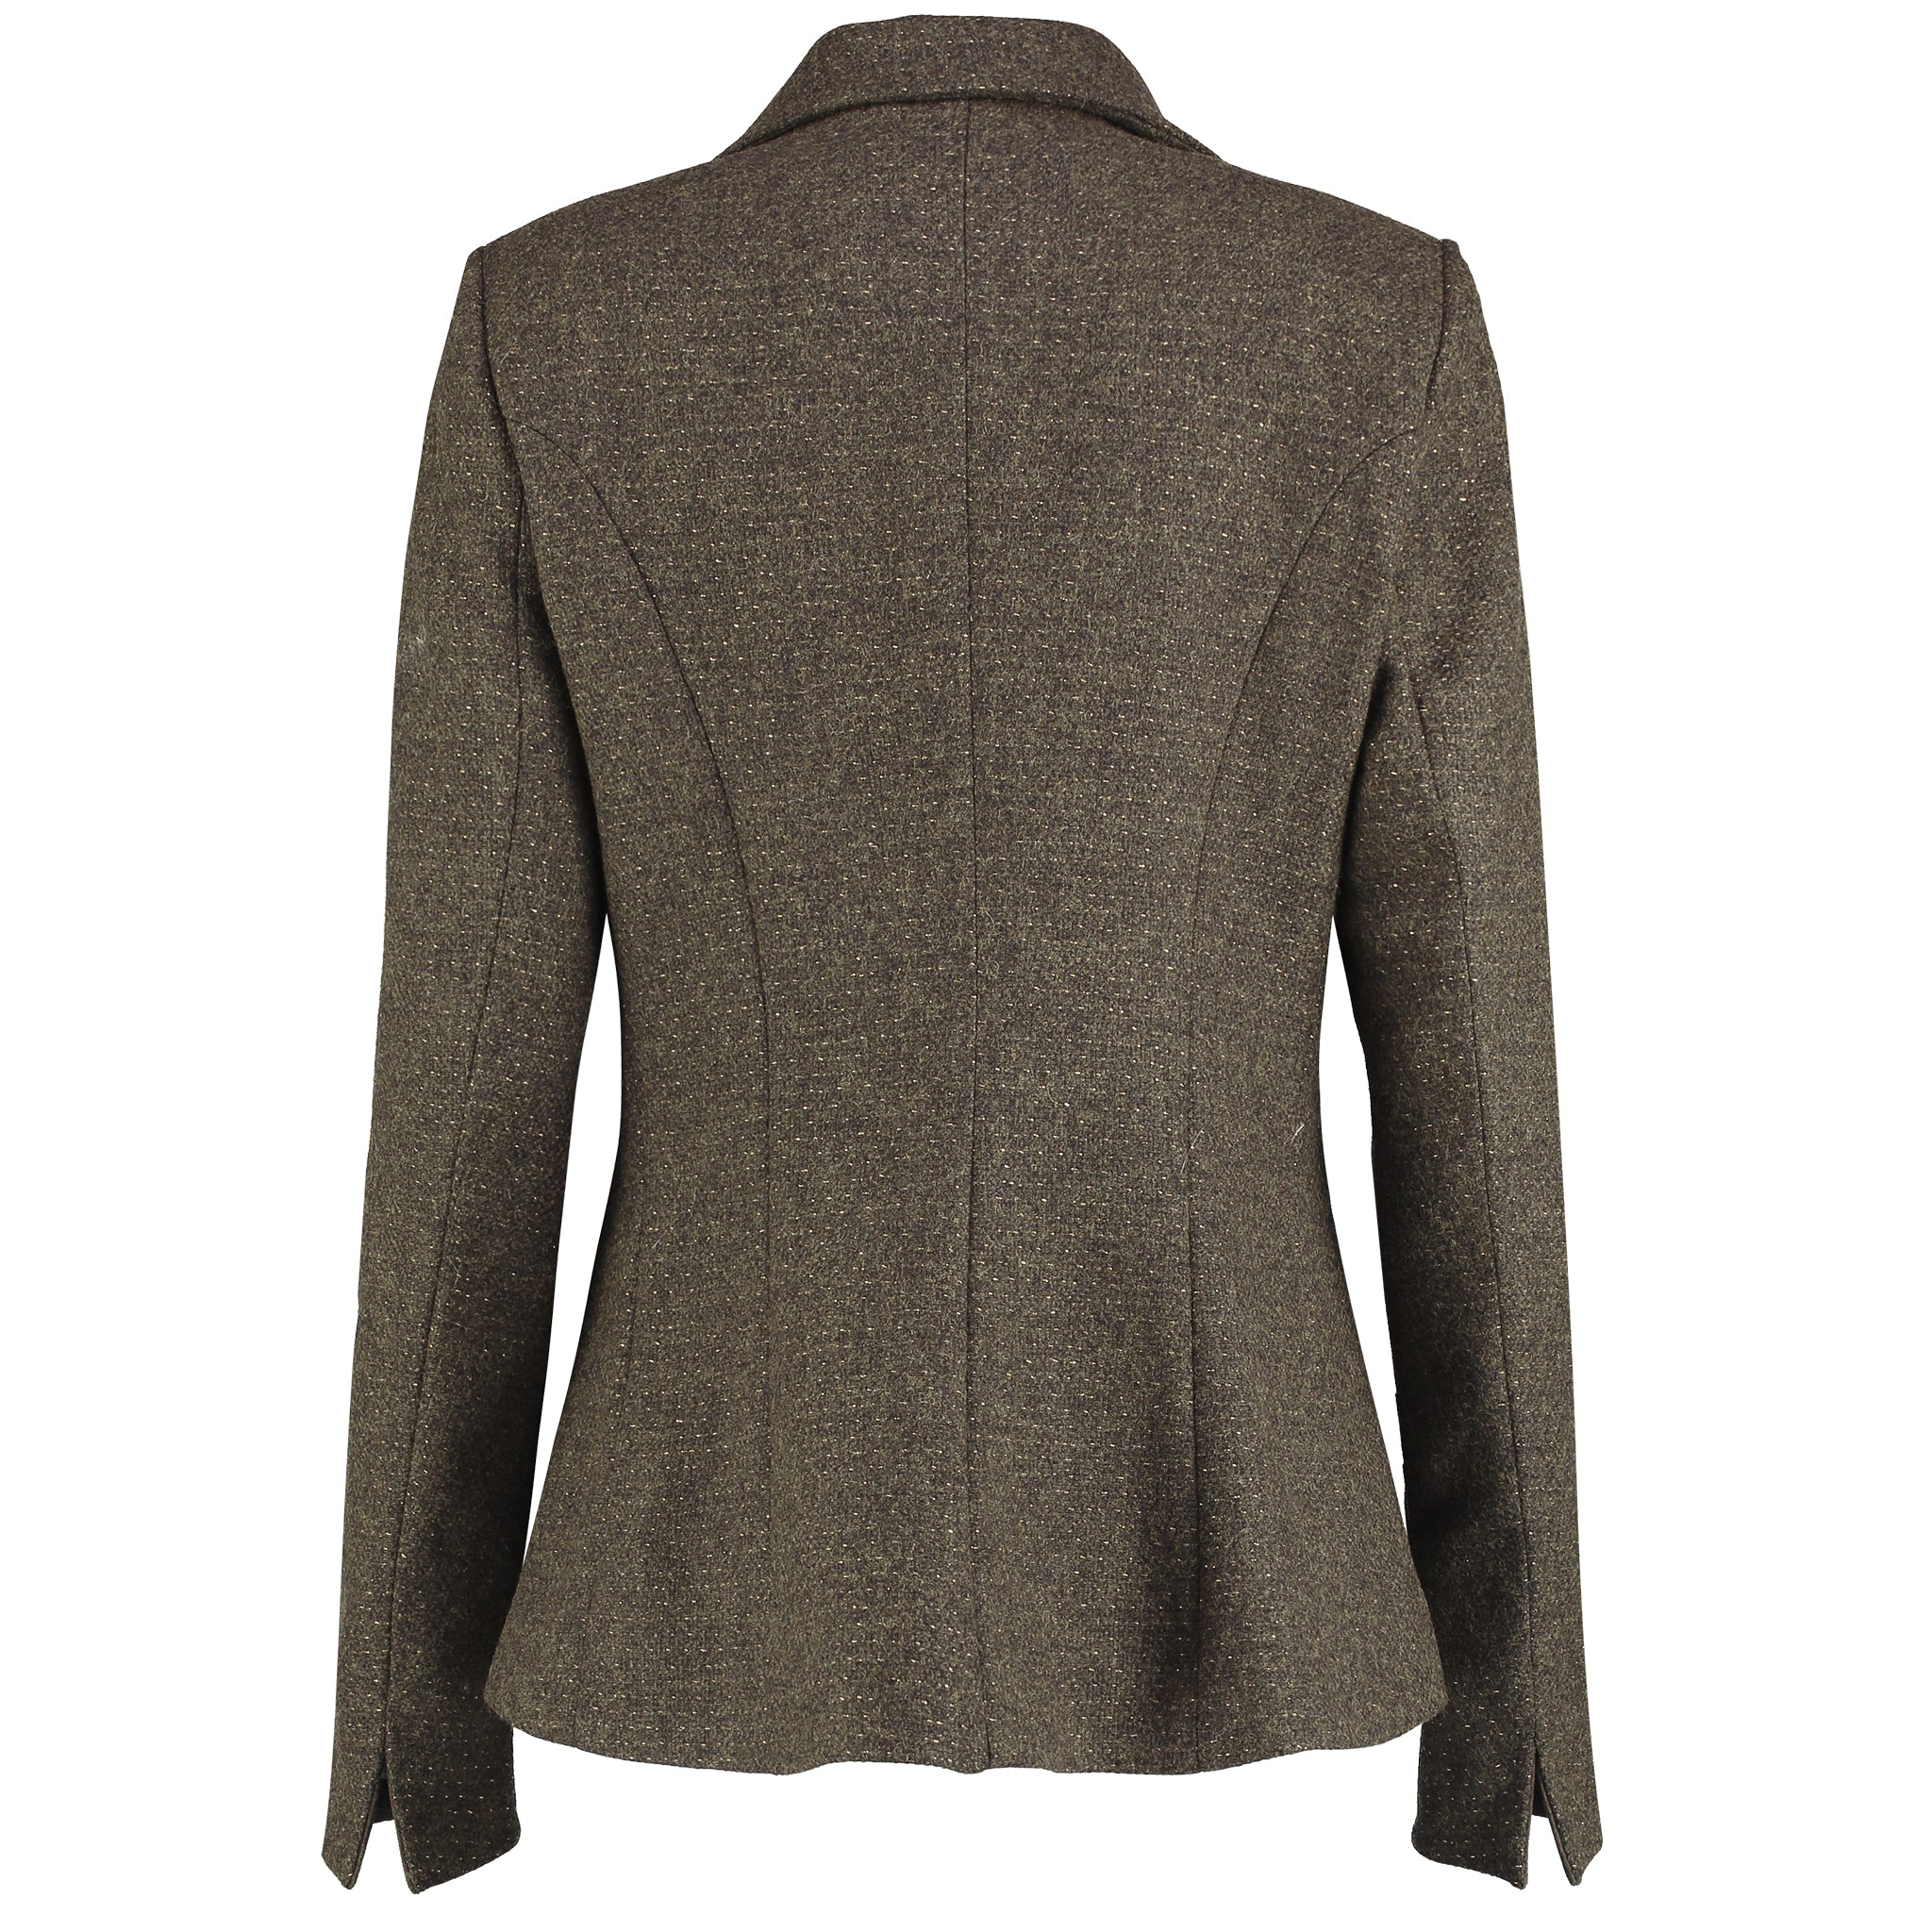 T.Ba Duck Tweed Jacket for Ladies in Green Gold Tweed